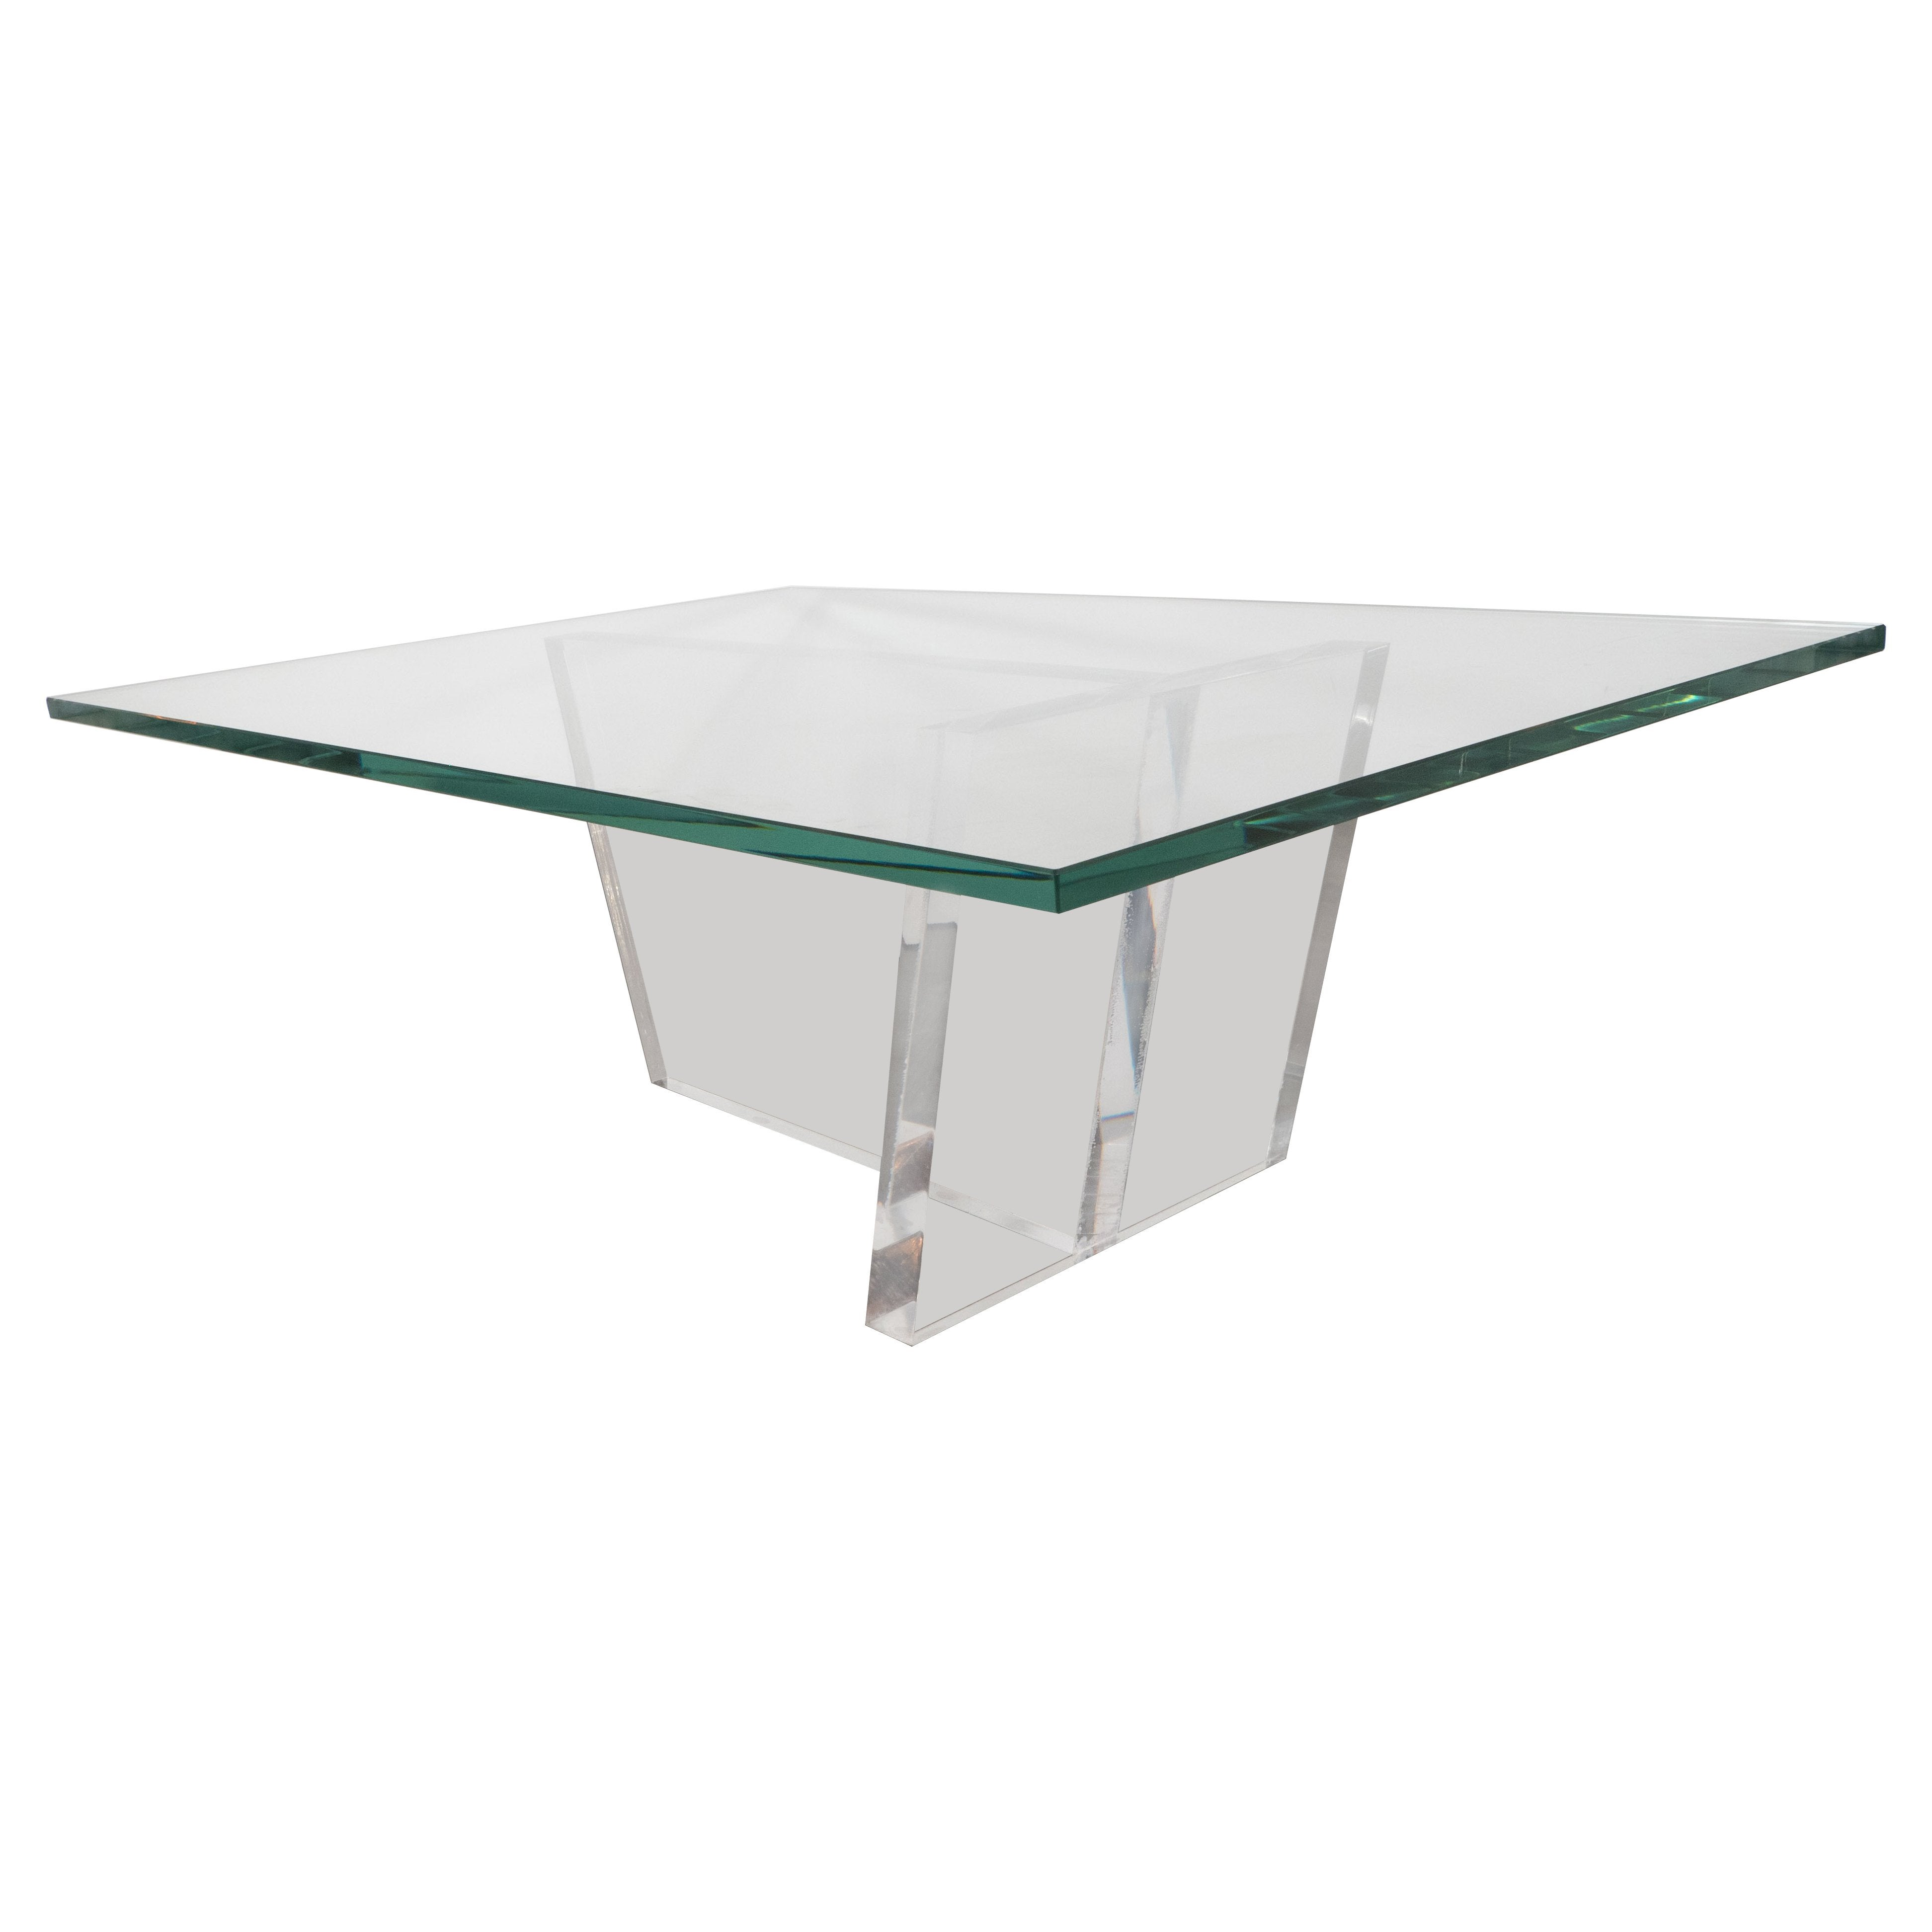 Sculptural Mid-Century Modernist Glass and Lucite Cocktail Table